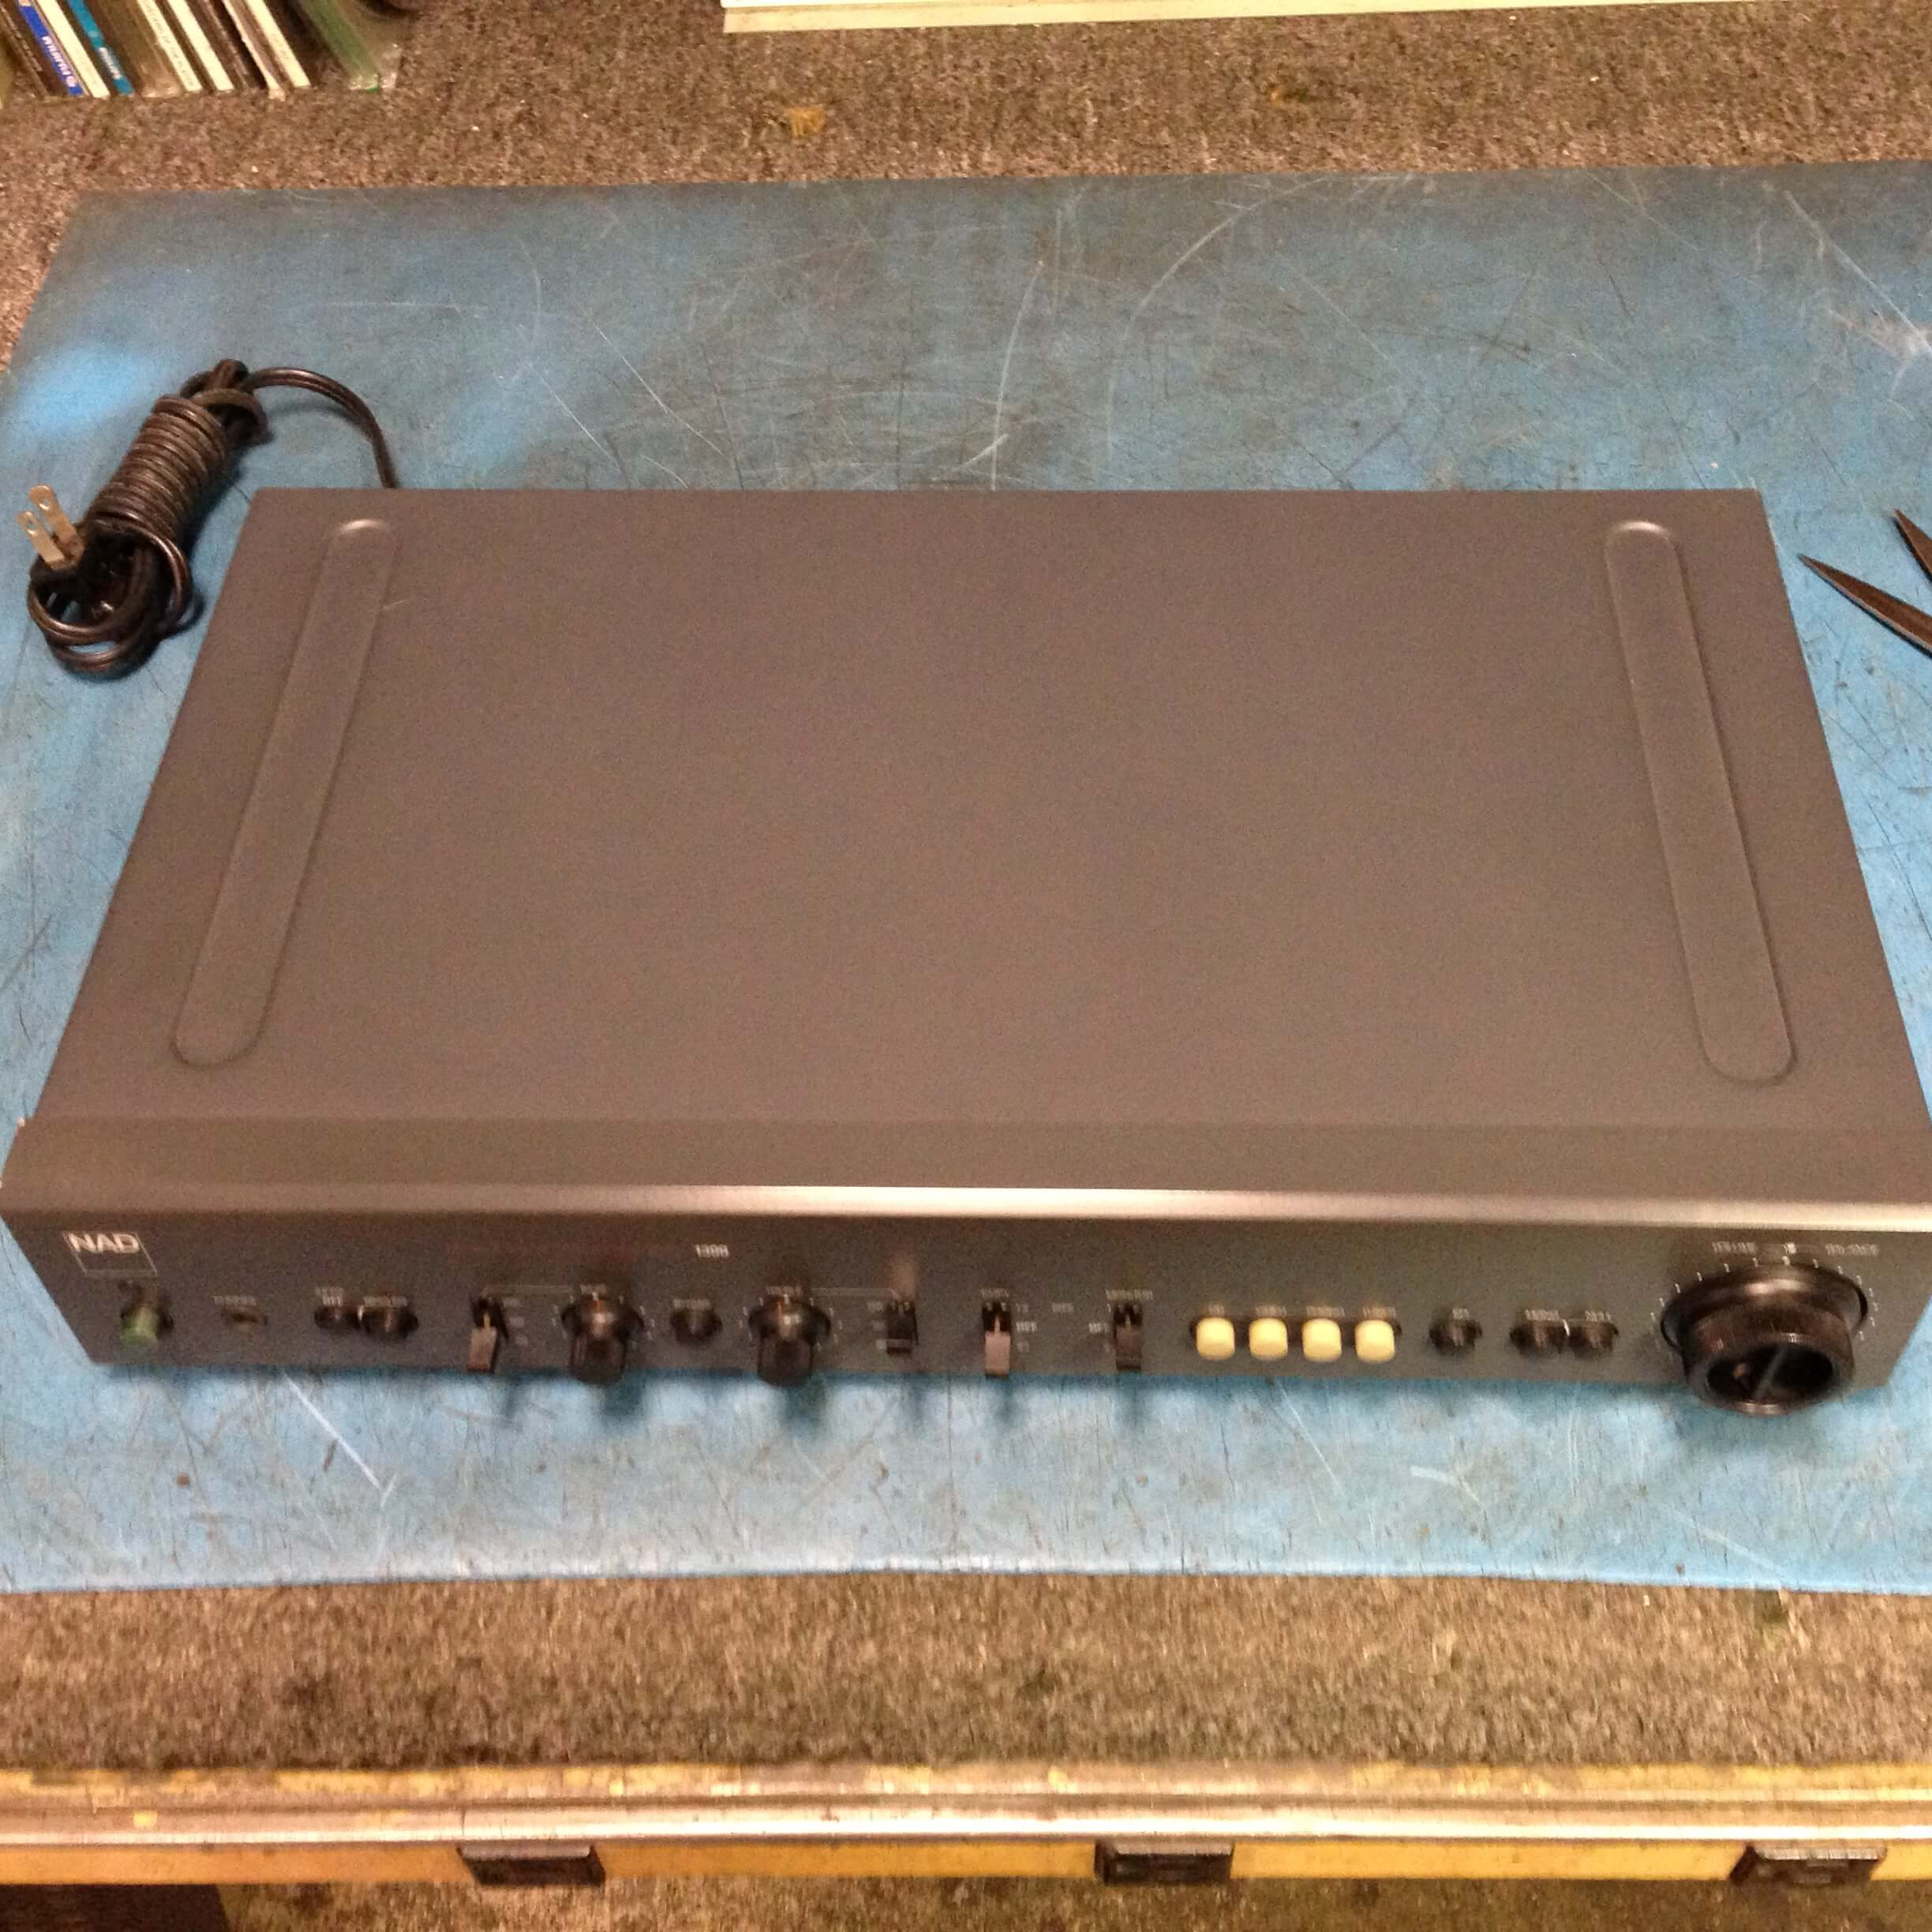 Nad 1300 monitor series preamp manual : Watch project runway